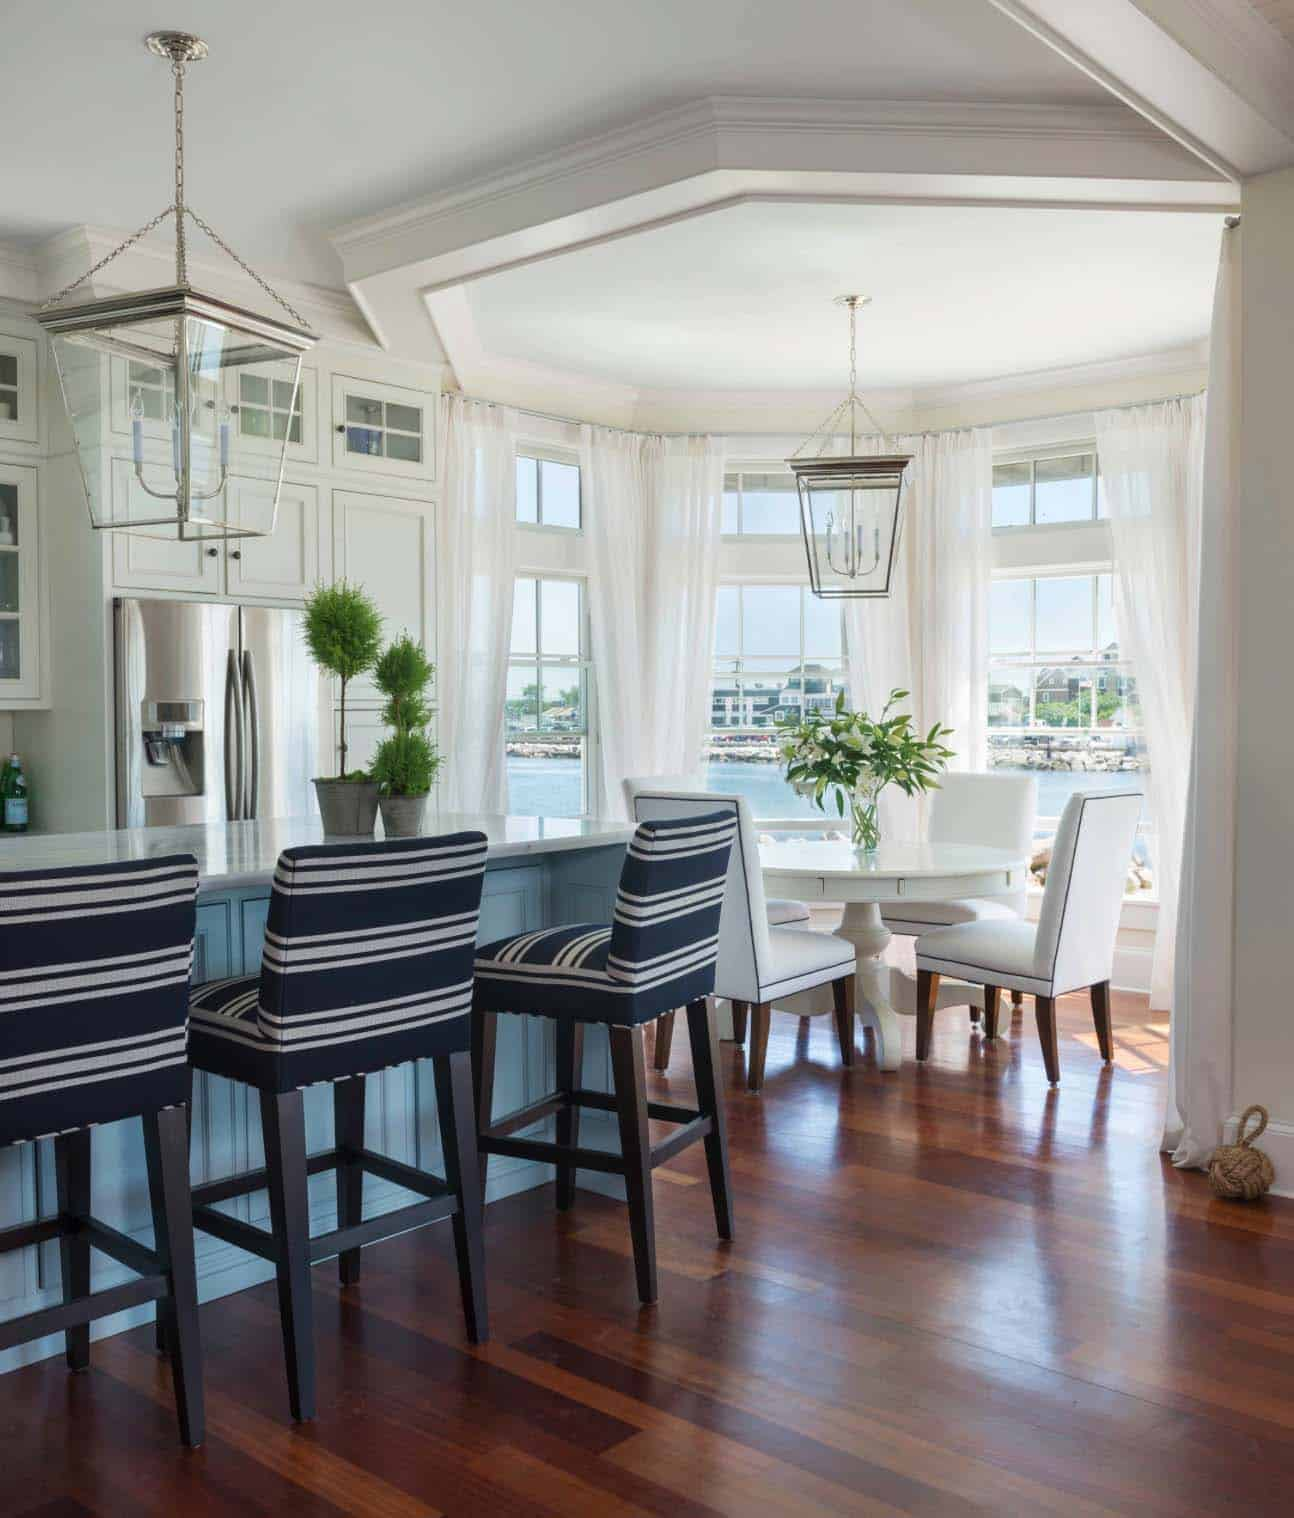 sailcloth beach chairs brown leather recliner chair a dreamy new england house with seaside views | one kindesign